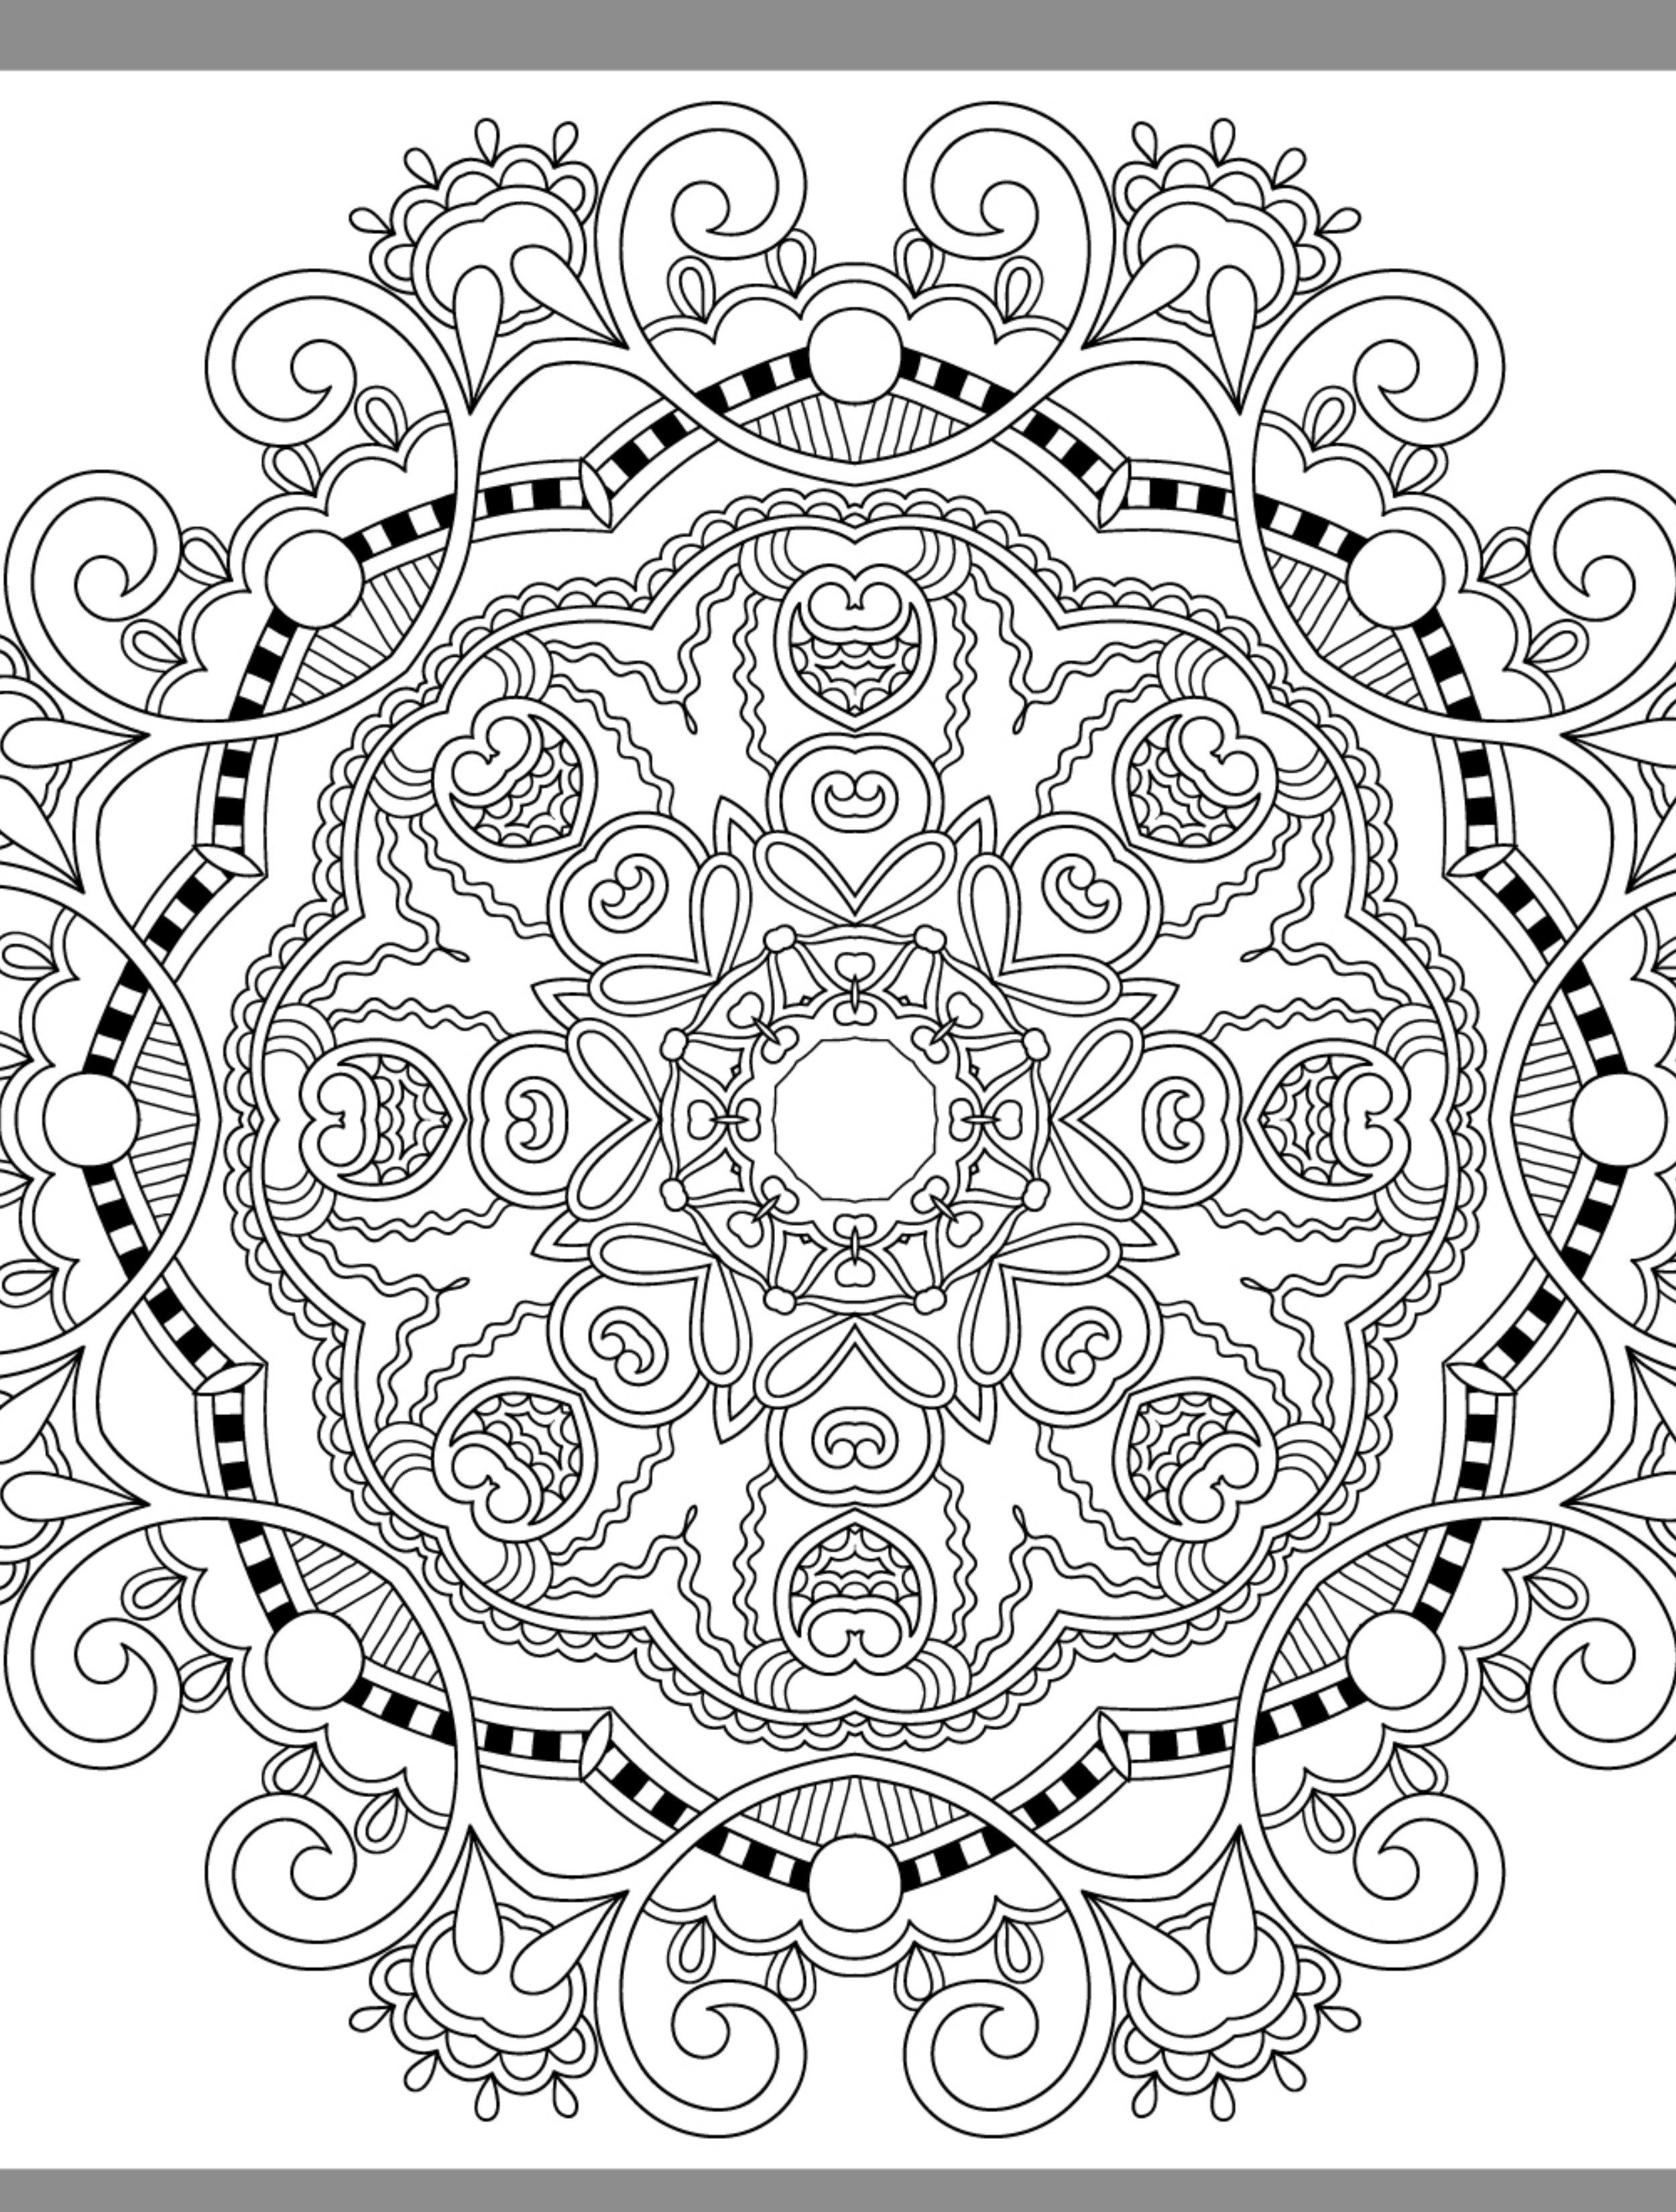 Awesome free downloadable coloring pages for adults web